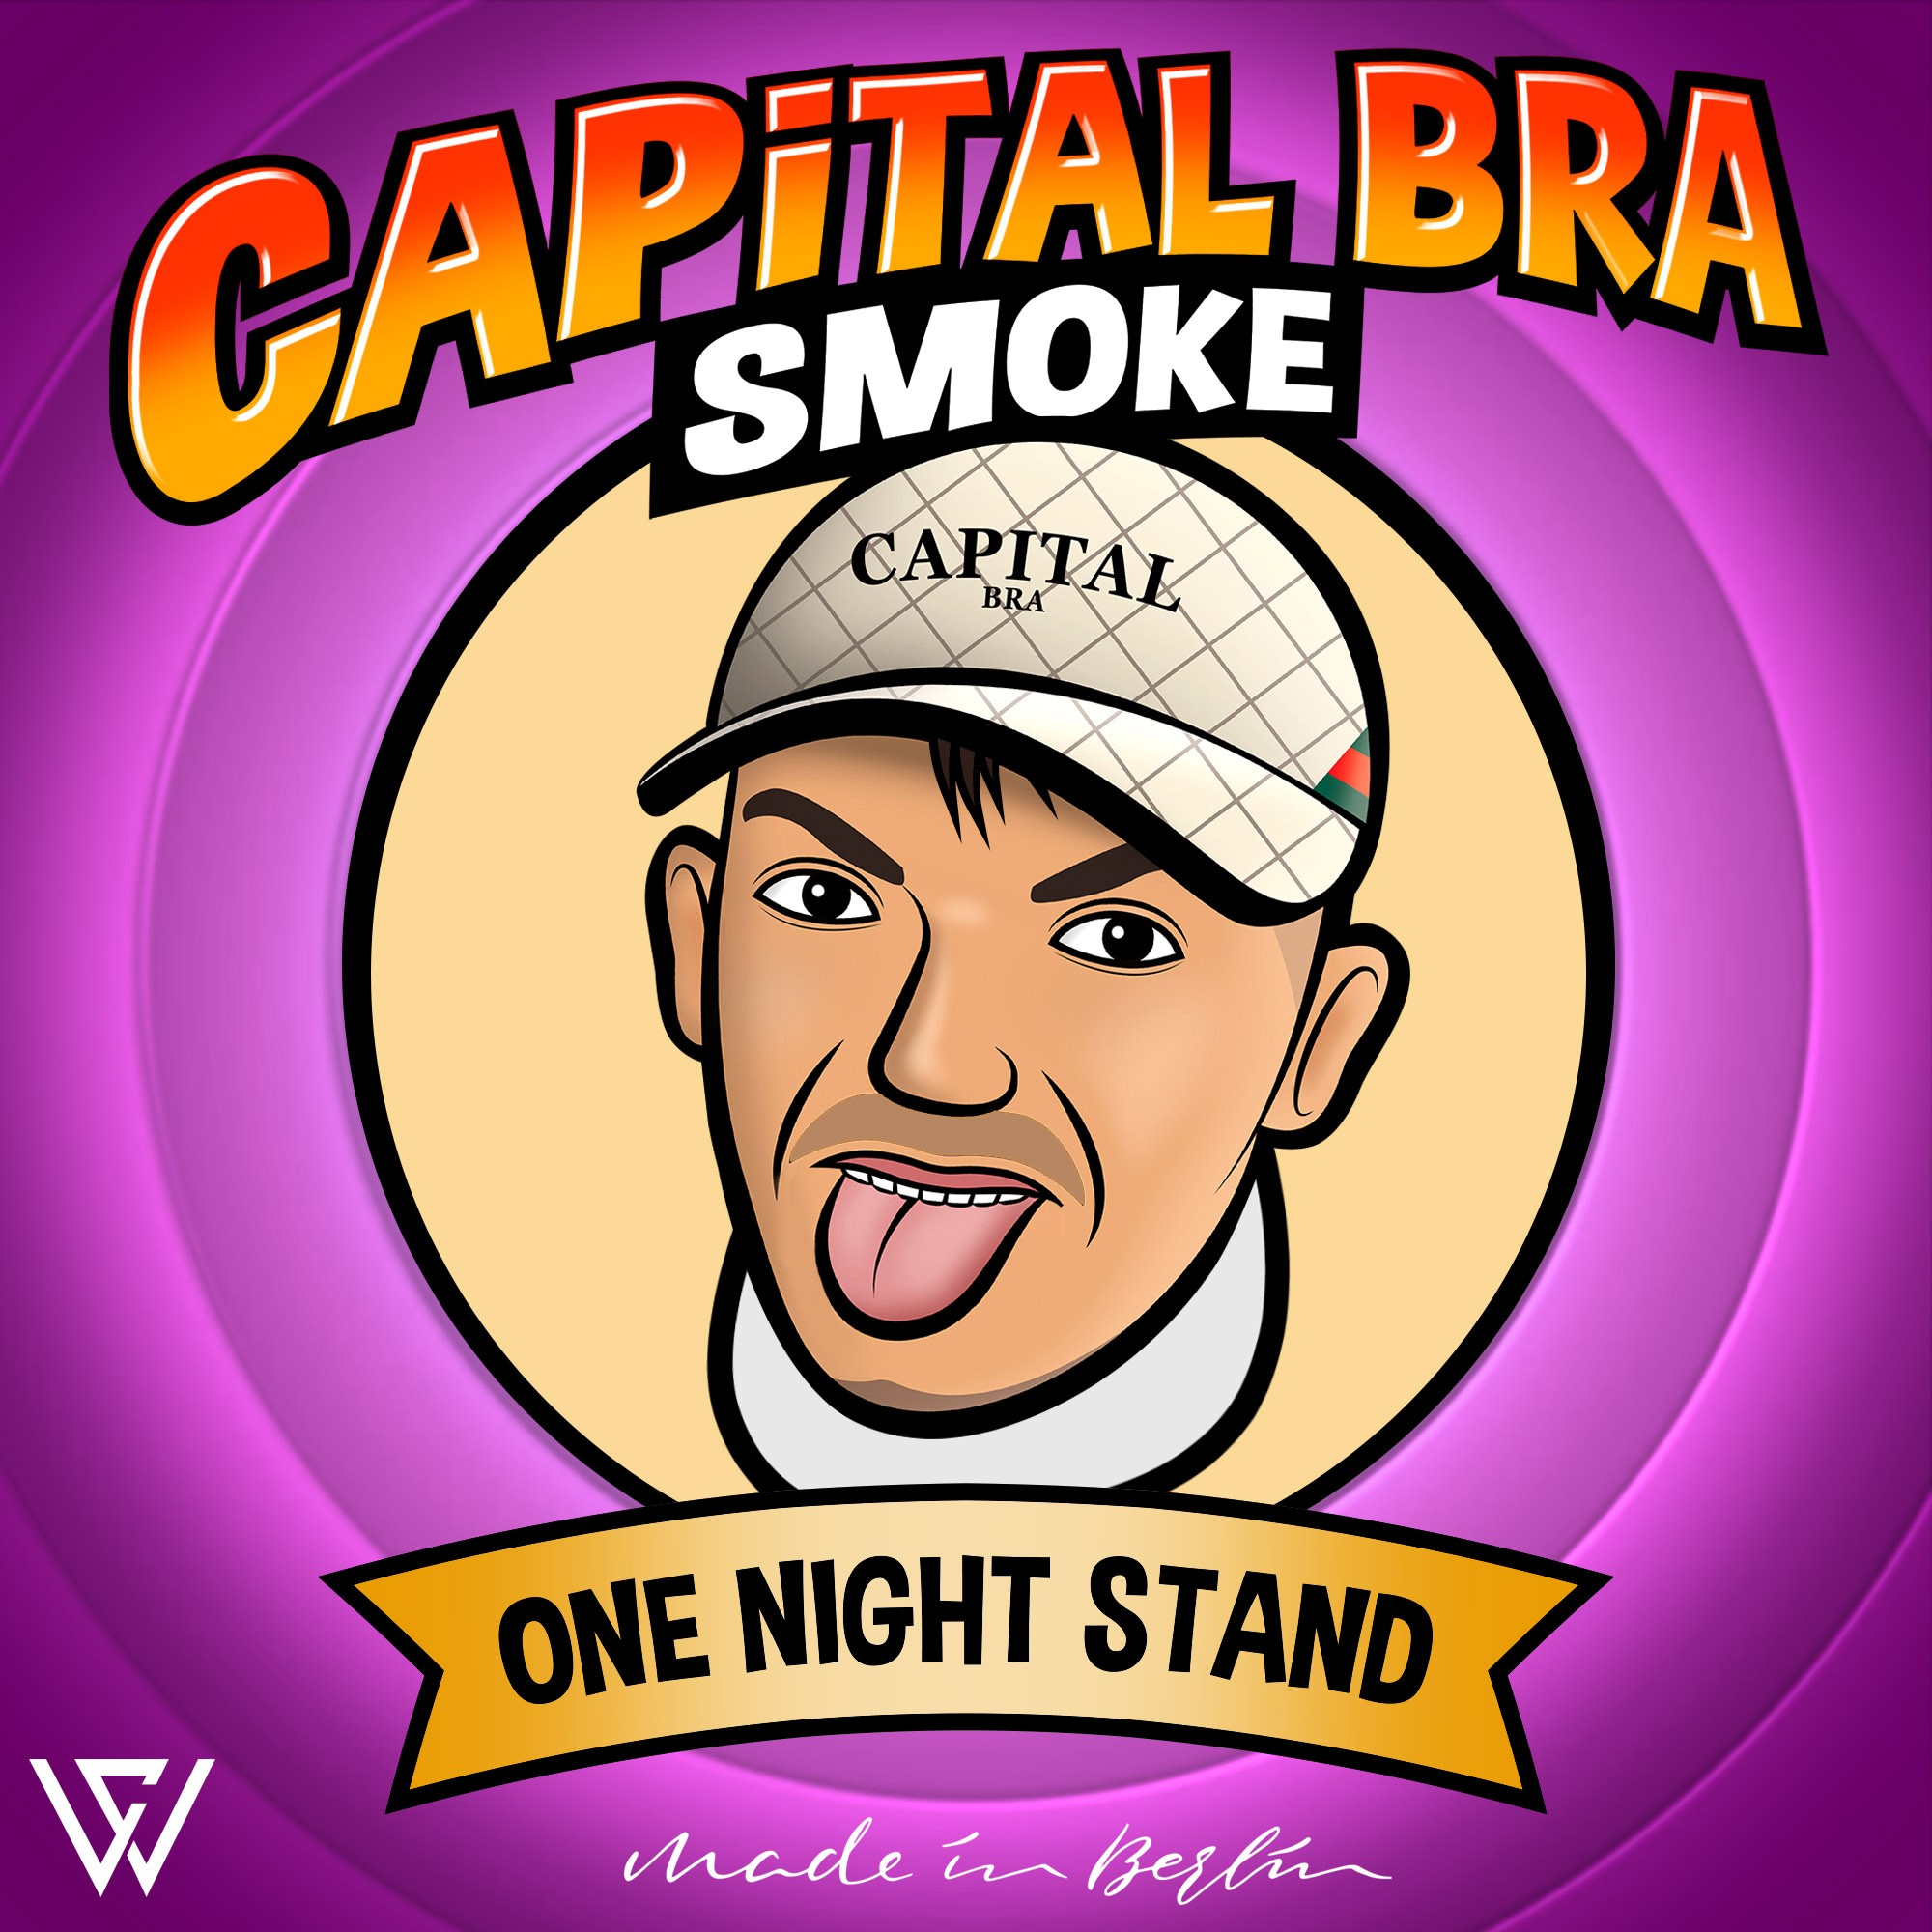 Capital Bra Smoke 200g - One Night Stand